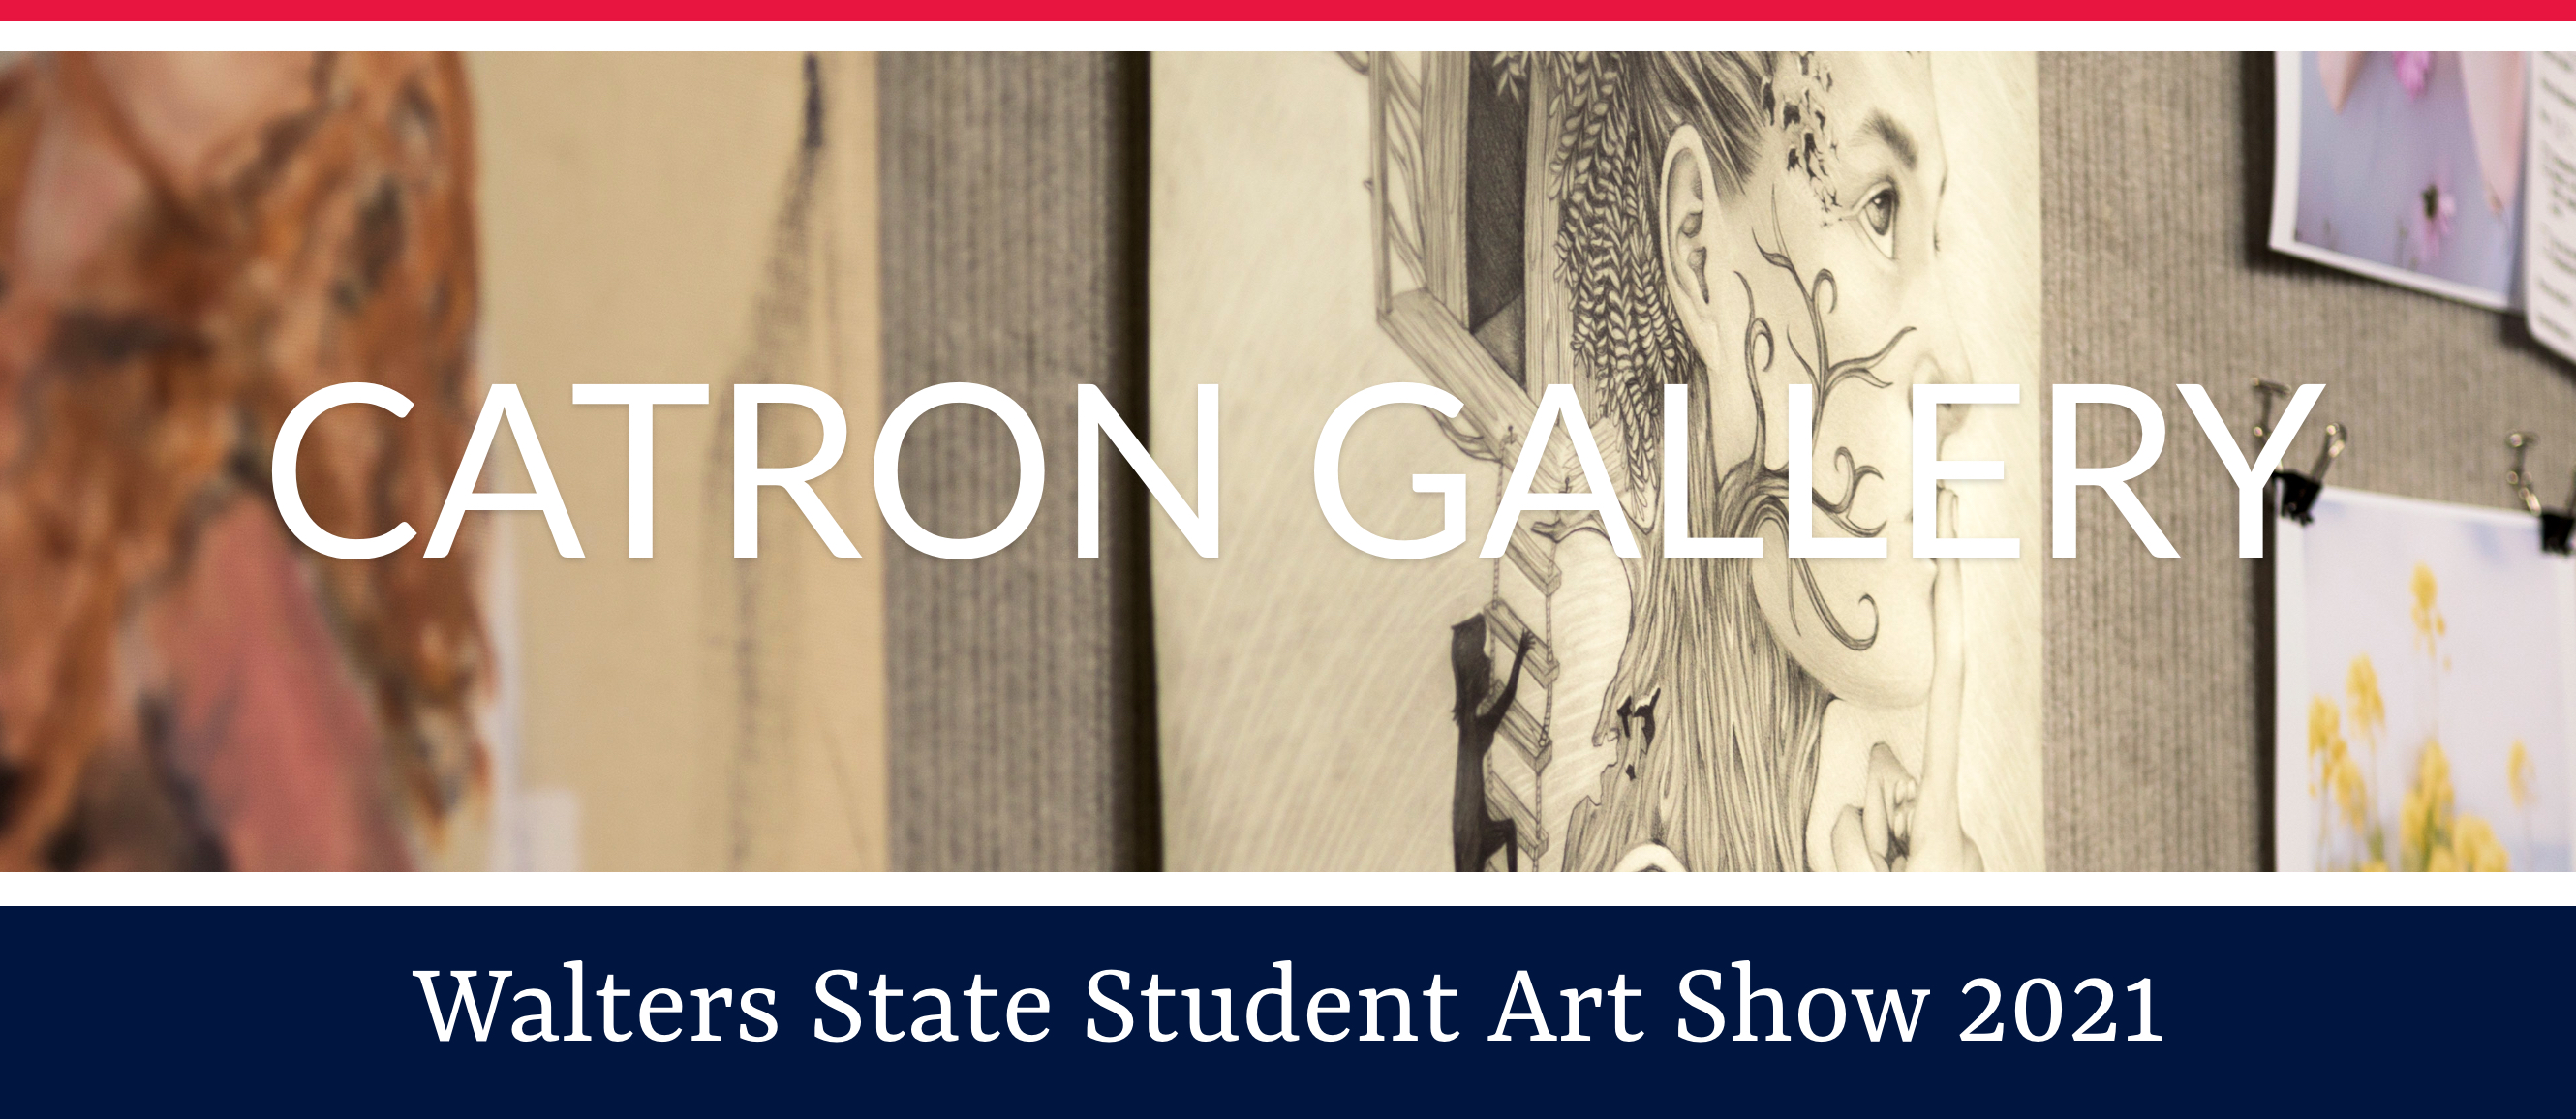 Catron Gallery. Walters State Student Art Show 2021